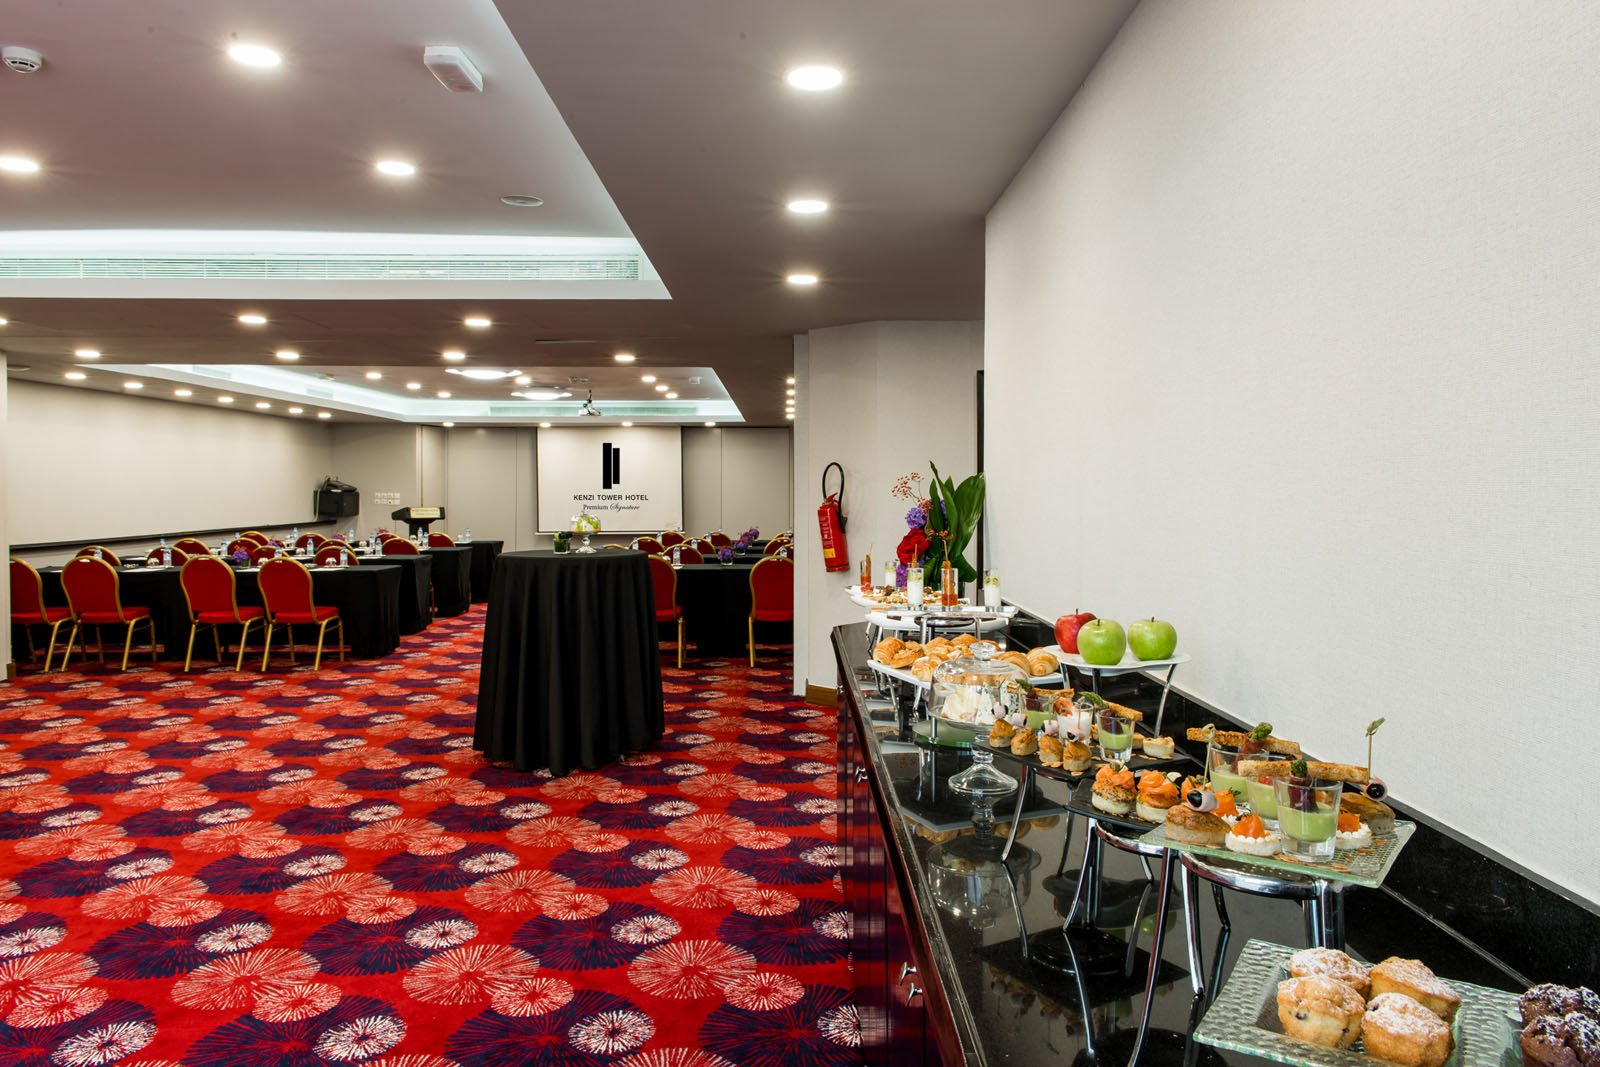 Meetings & Events at Kenzi Tower Hotel in central Casablanca, Mo